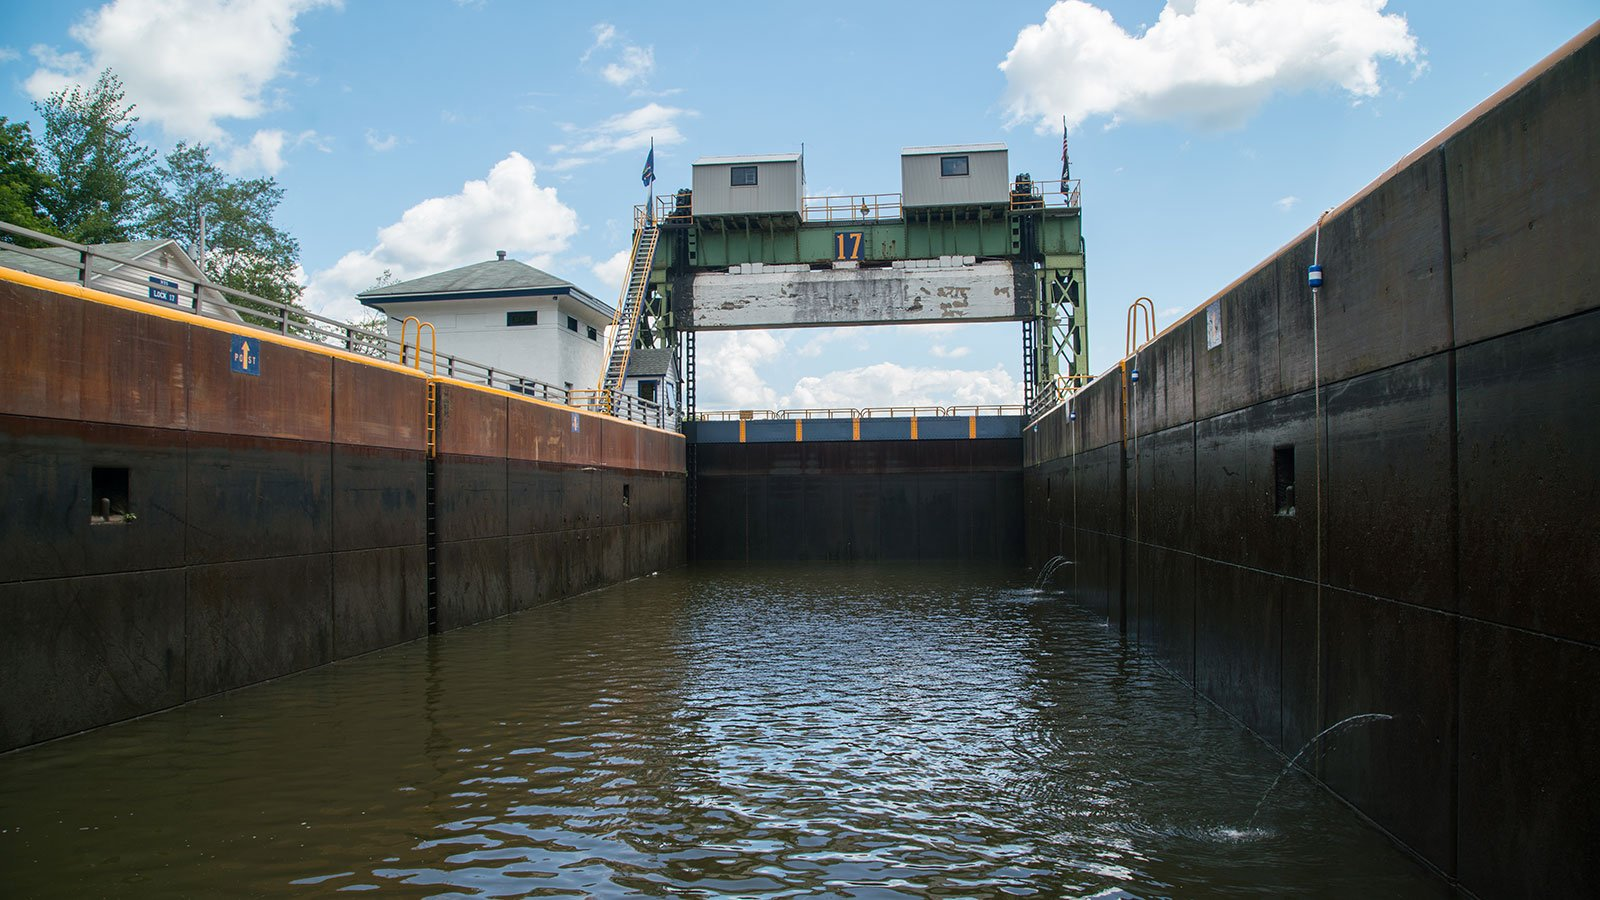 Lock 17 along the Erie Canal in Little Falls, New York, in 2017